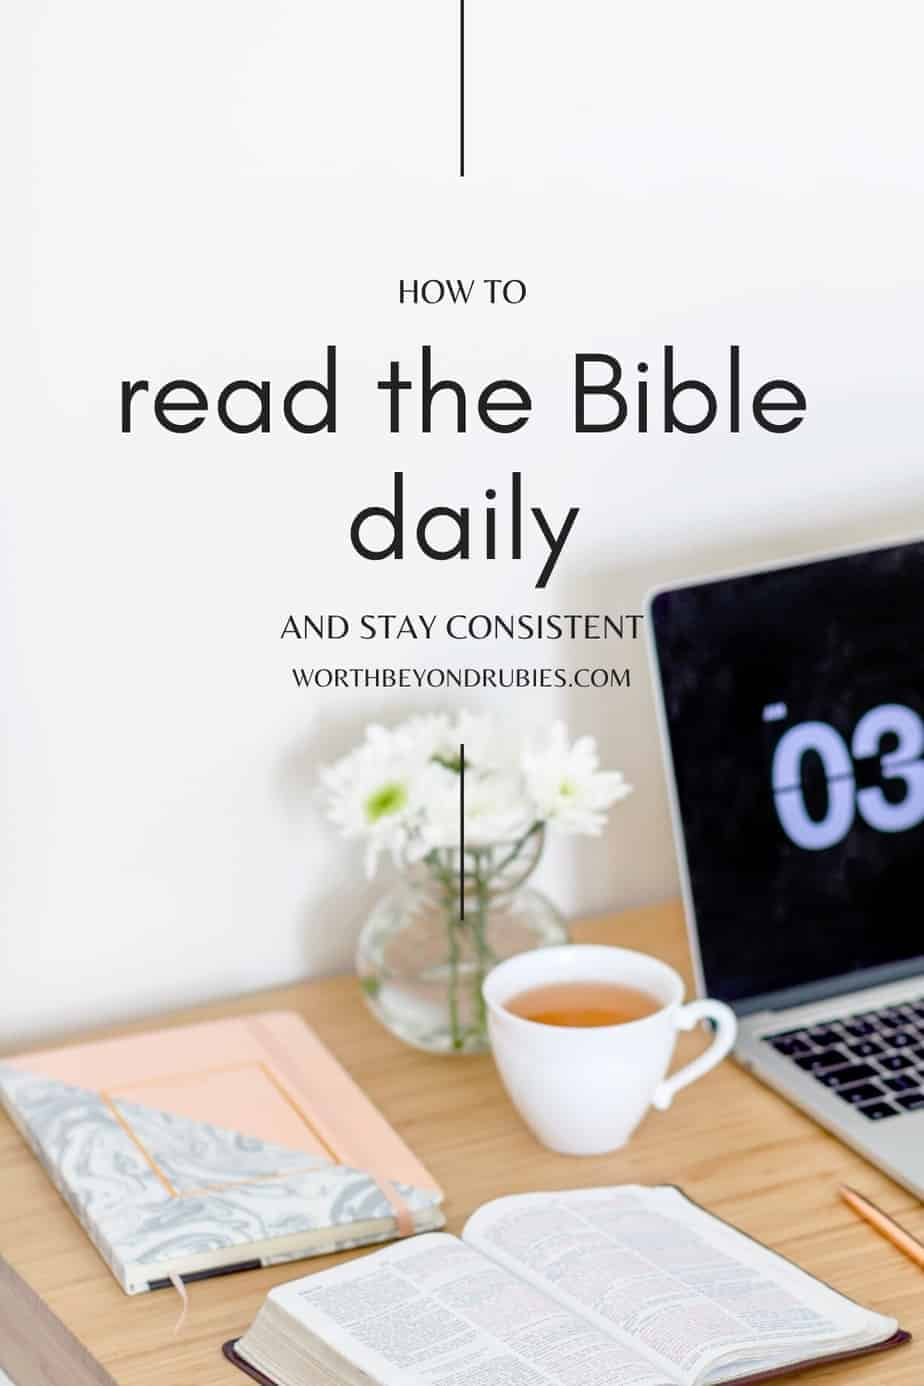 a Bible on a desk next to a laptop and a cup of tea with a text overlay that says How to Read the Bible Daily and Stay Consistent